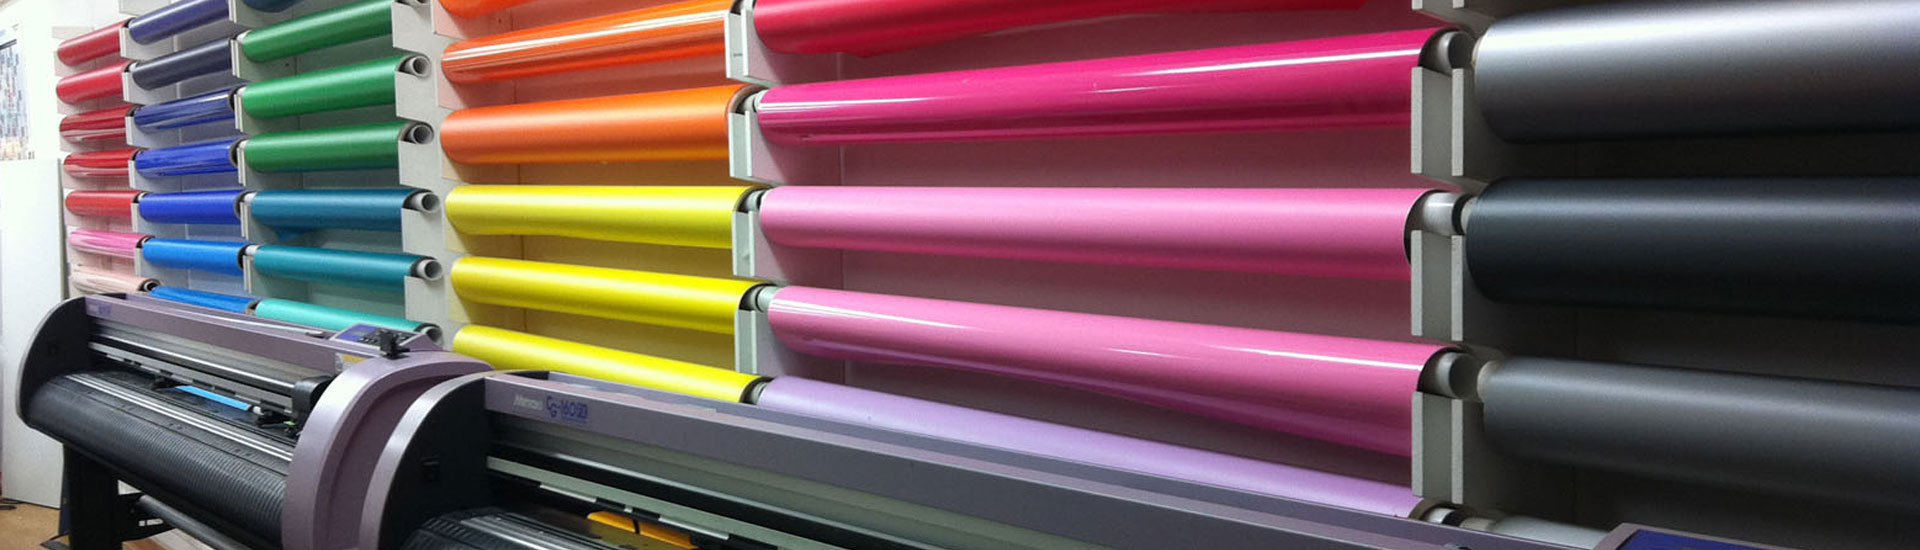 Craft Vinyl for Cricut, Silhouette and All Vinyl Cutter Machines